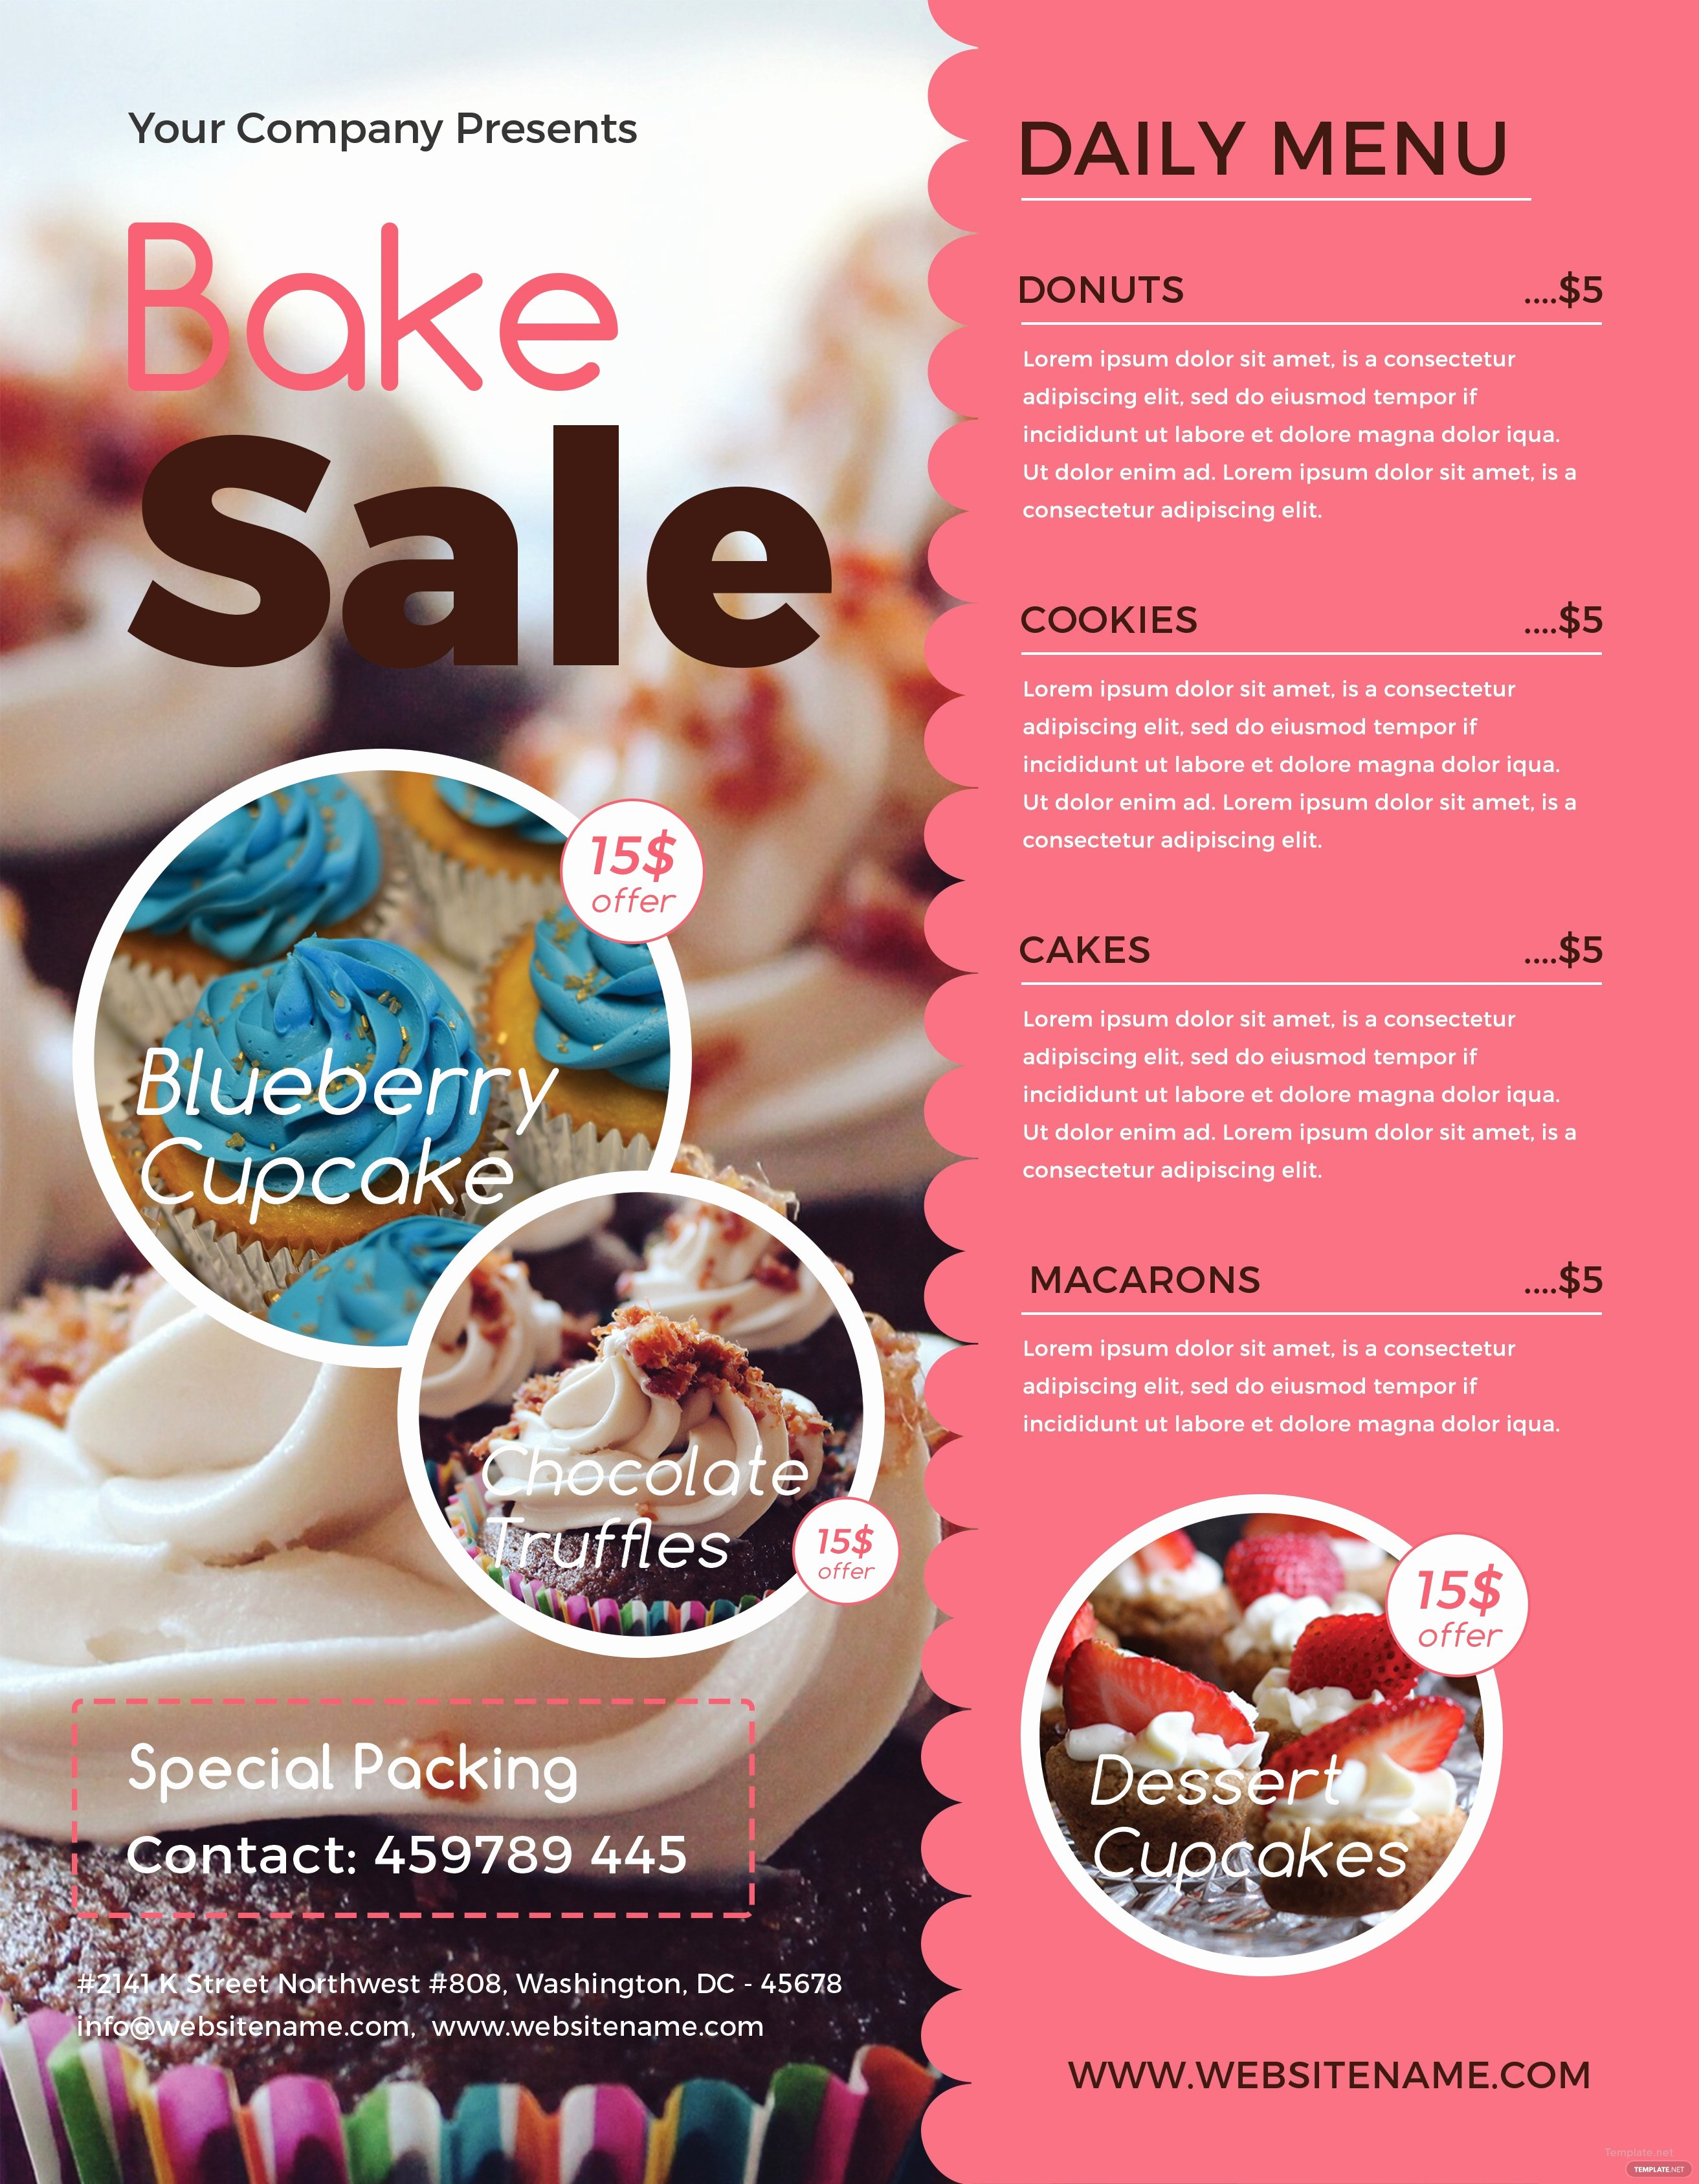 Bake Sale Flyer Template Word Beautiful Free Bake Sale Flyer Template In Adobe Shop Illustrator Microsoft Word Publisher Apple